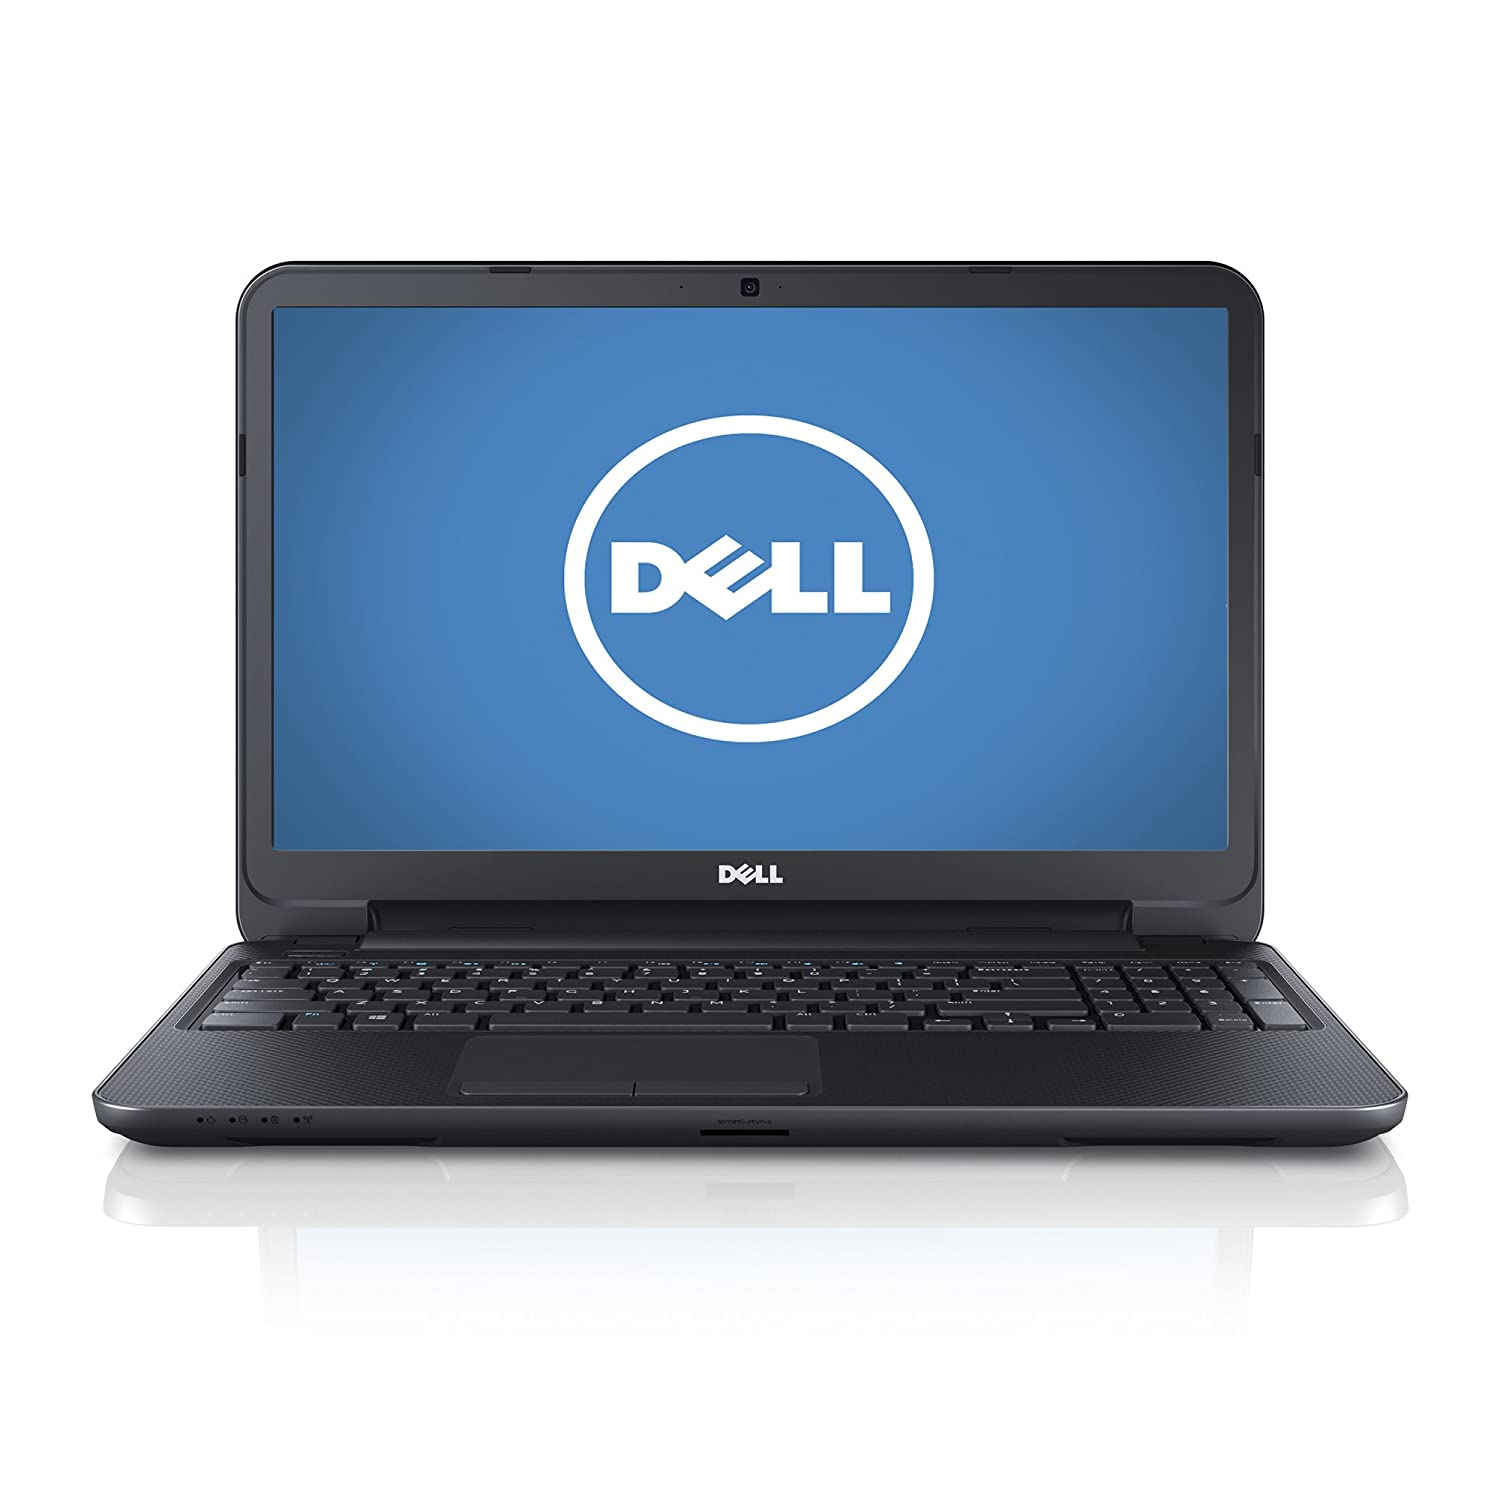 com dell inspiron irv blk laptop intel pentium u com dell inspiron i15rv 954blk laptop intel pentium 2127u 1 90 ghz 4 gb memory 500 gb hdd intel hd graphics 15 6 windows 8 1 black matte